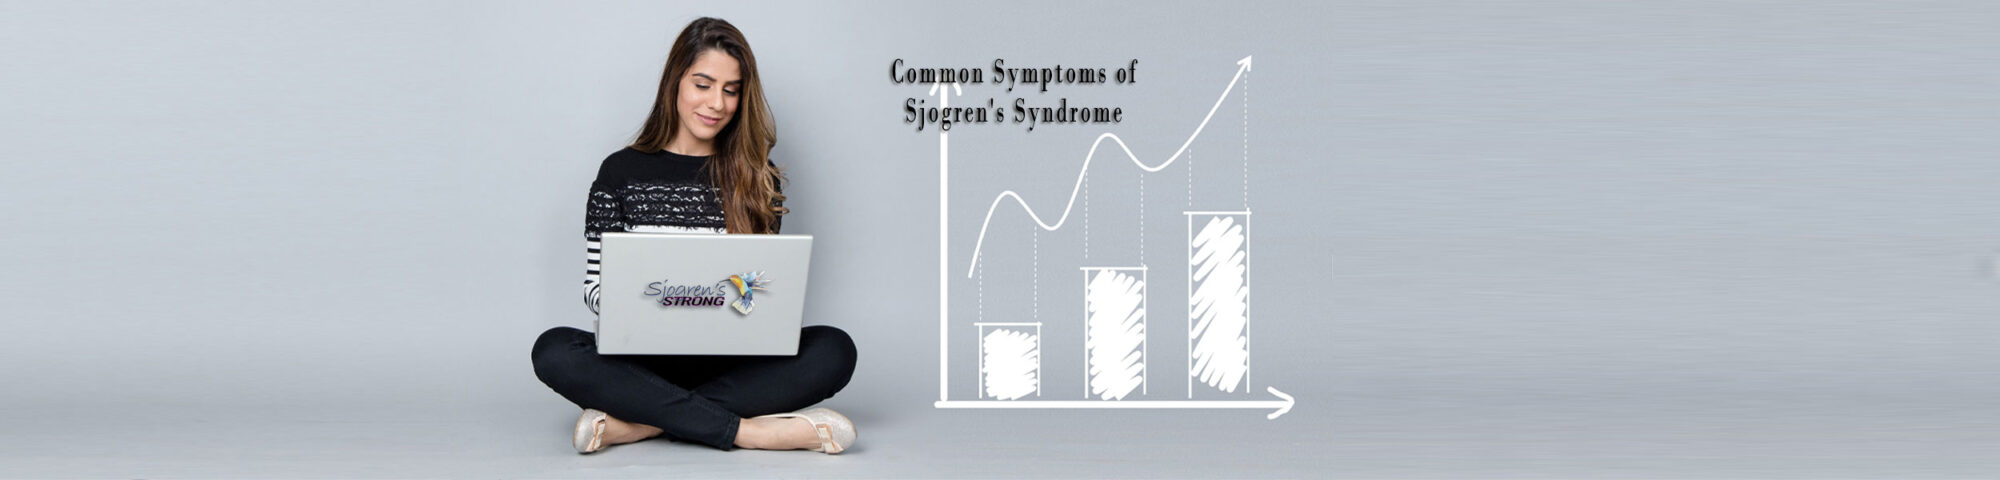 Common Symptoms of Sjogren's Syndrome